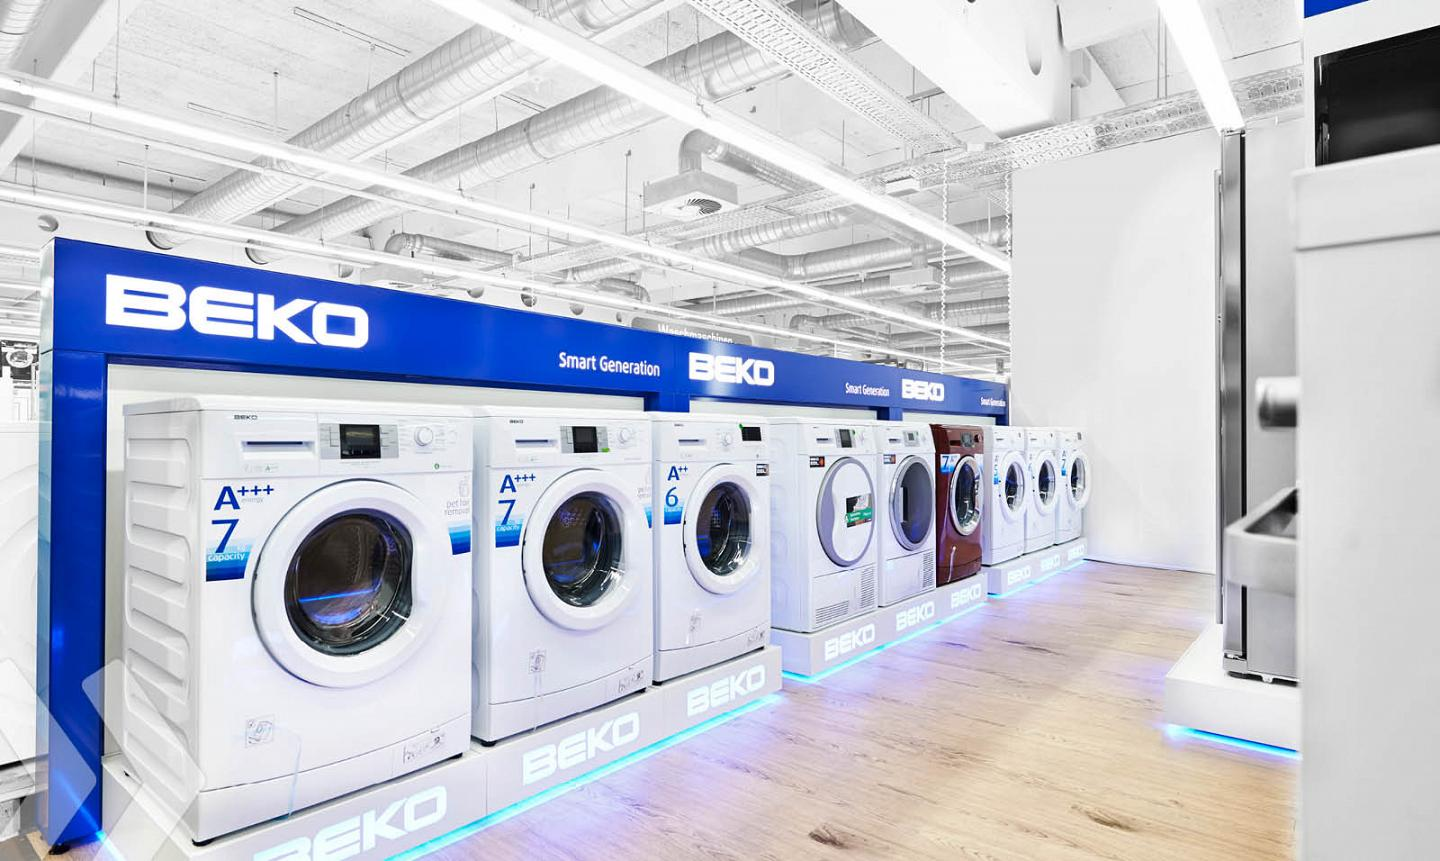 beko 04 shop in shop shop in shop systeme retail design